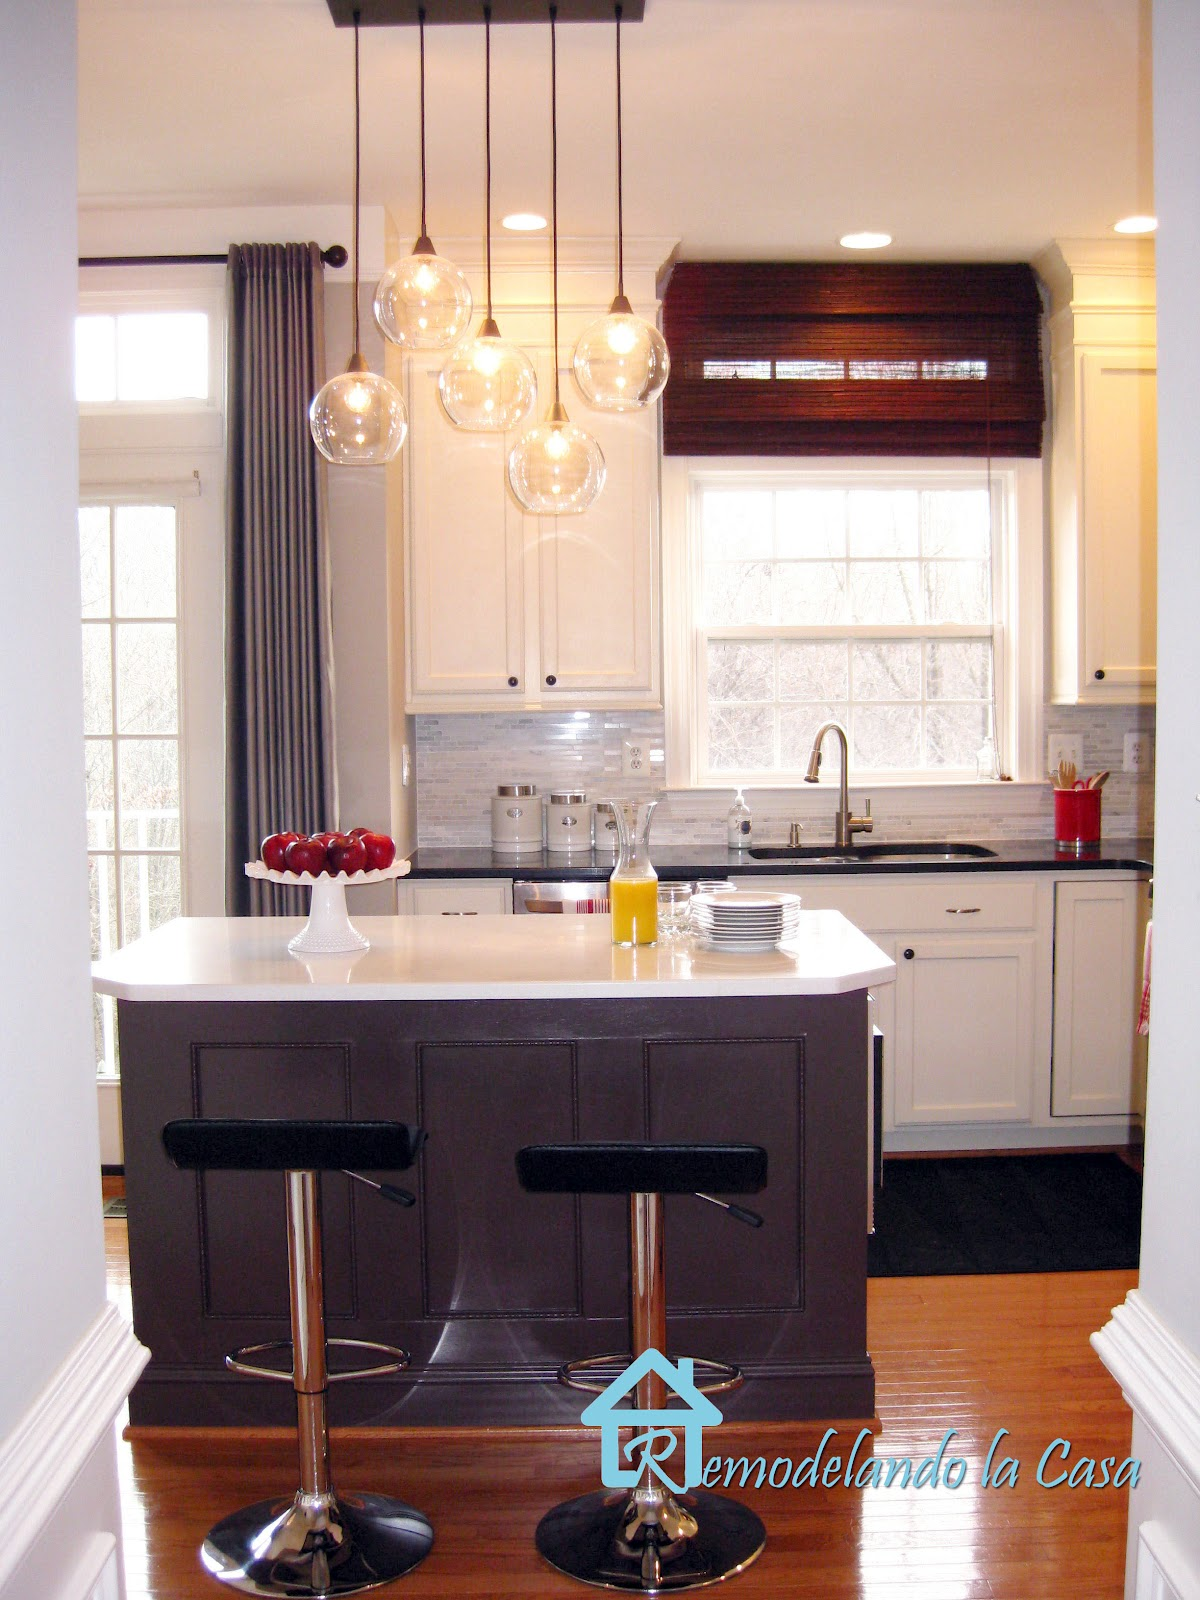 Kitchen makeover remodelando la casa for Kitchen refurbishment ideas